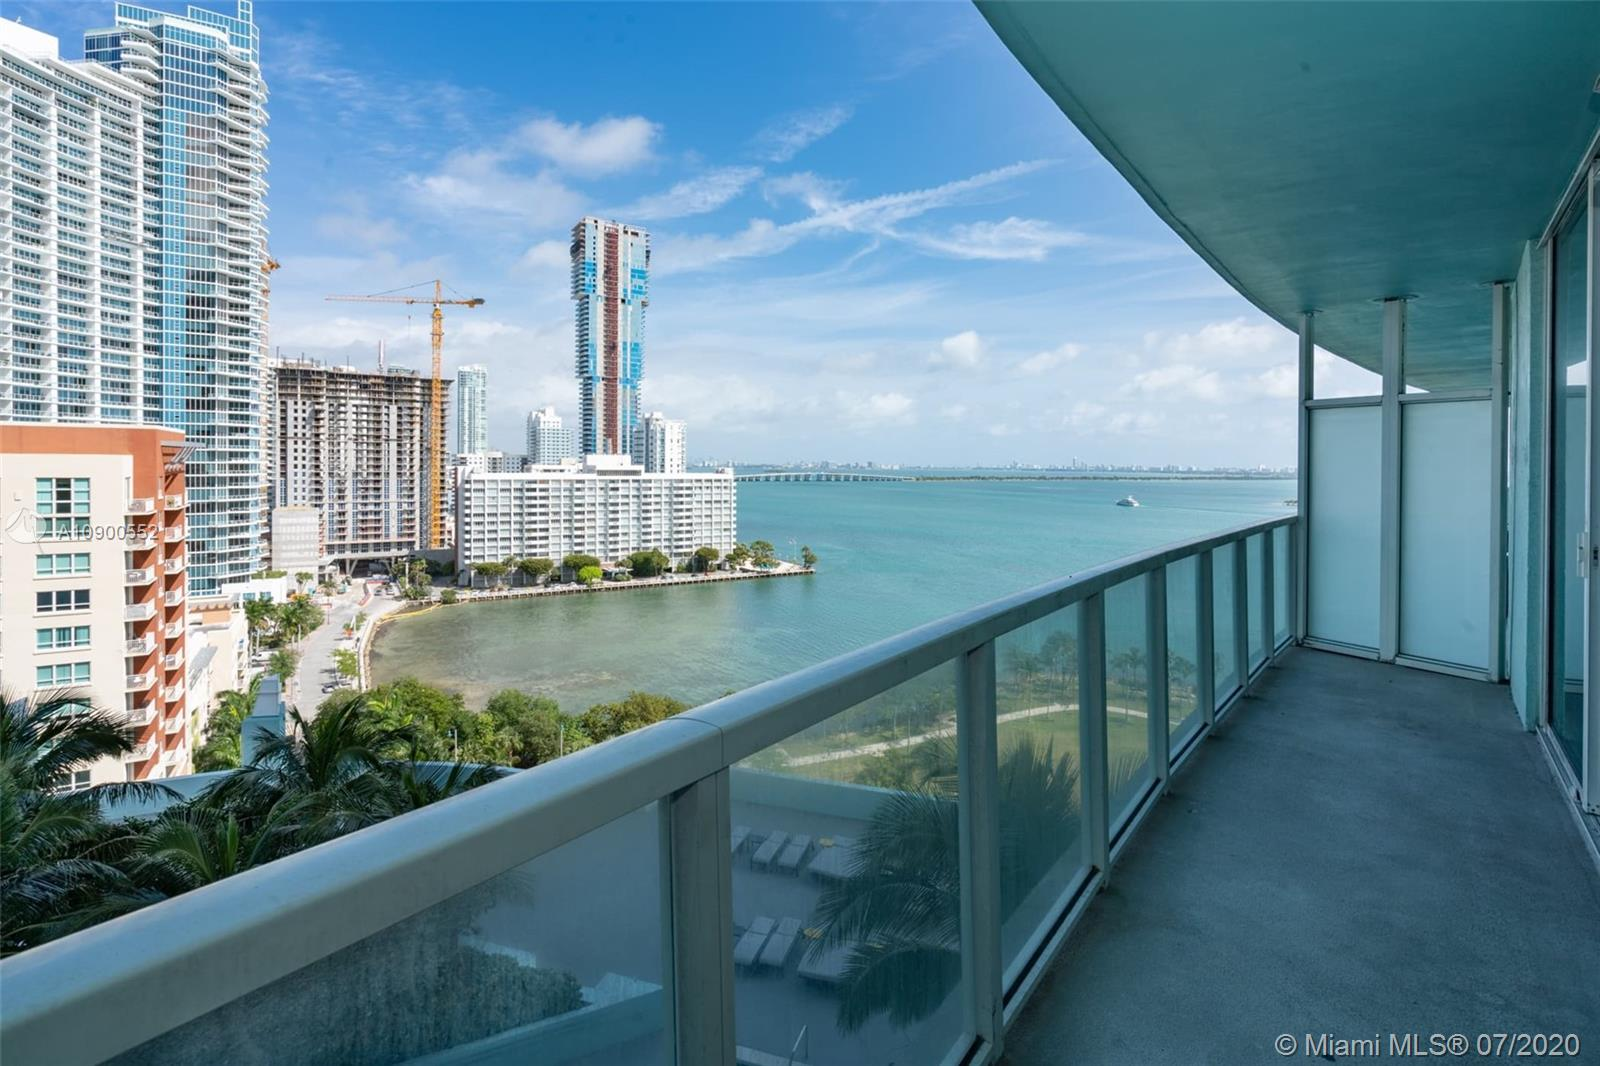 Wonderful 1 bedroom plus den and 1 bath unit with spectacular bay and city views. Nice laminated wood floors. S/S appliances. Building features 2 story lounge area, 2-story state of the fitness center, 2 pools, theater, 24-hour concierge. Across the street from Margaret Pace park. Minutes from S.Beach, Airport, Downtown Miami, Design District, and walking distance to carnival center, shops and restaurants.